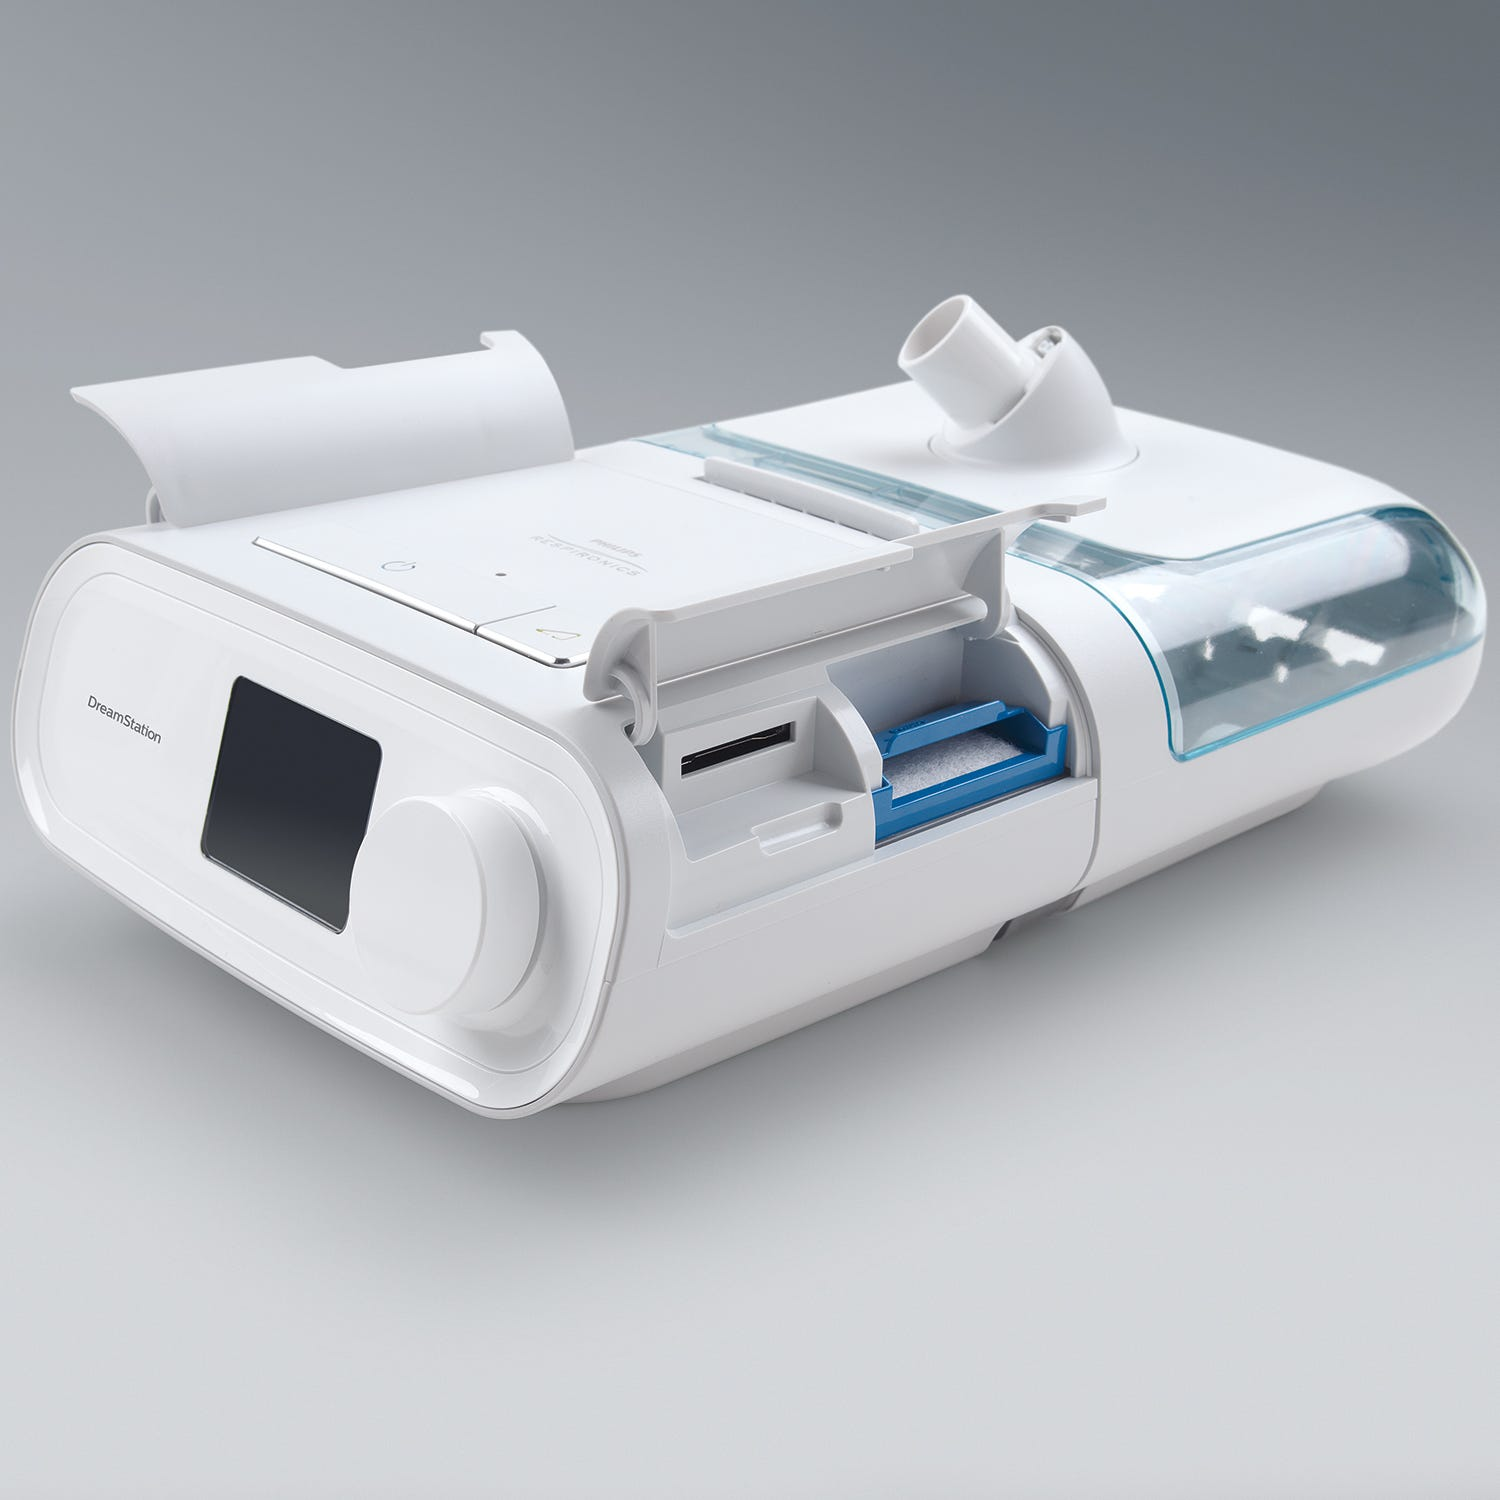 DreamStation Auto CPAP with Humidifier and Heated Tube and Cellular Modem